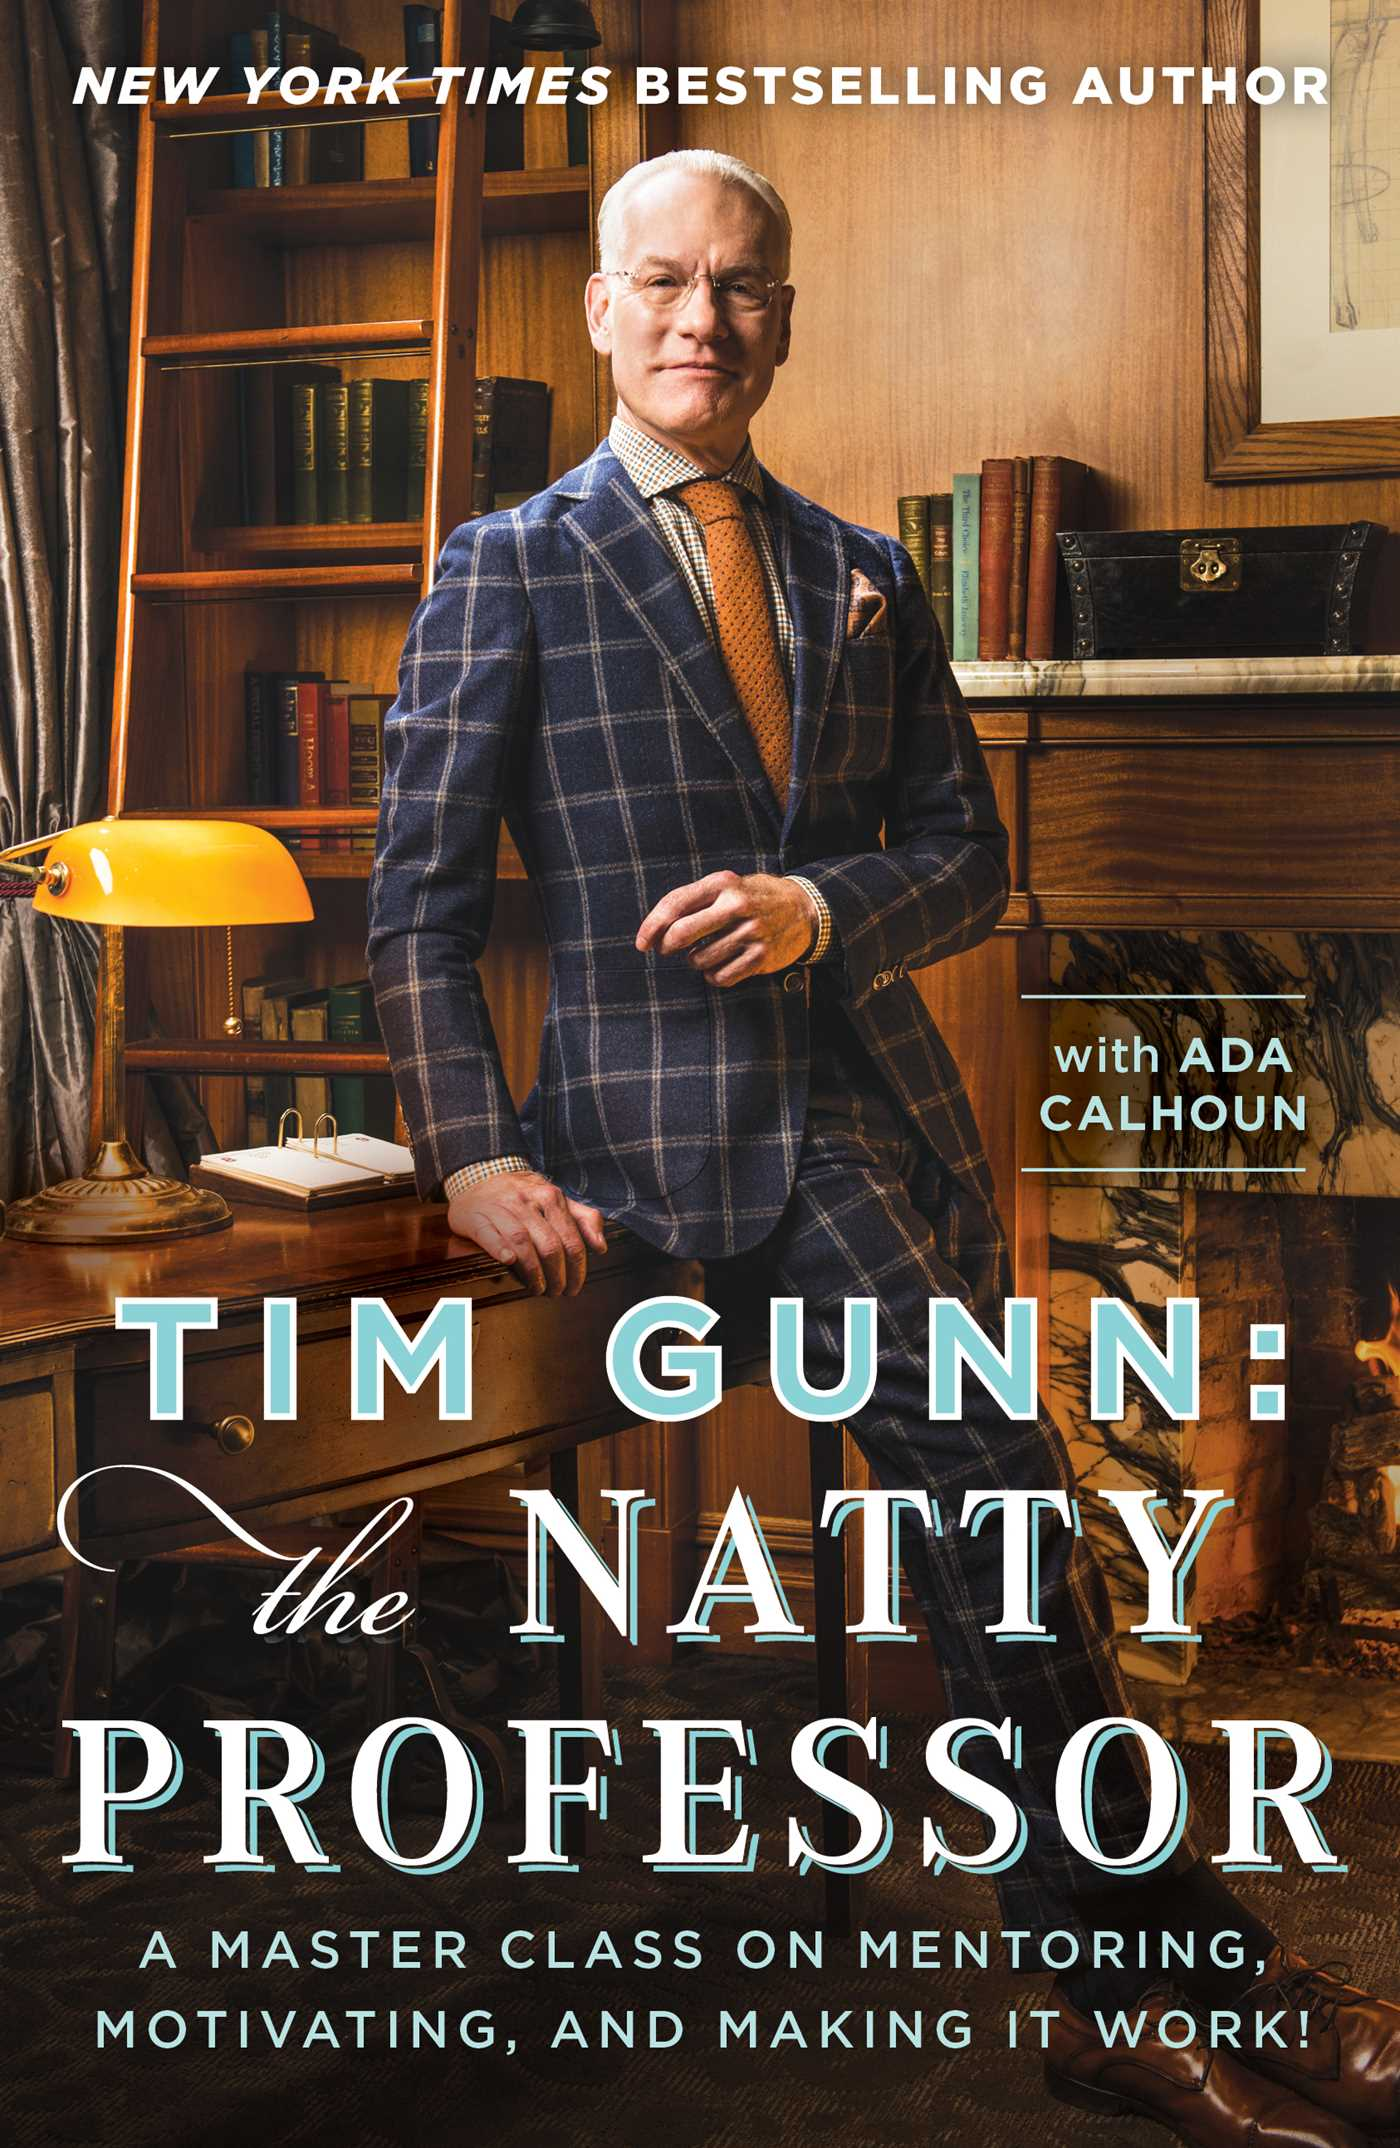 Tim-gunn-the-natty-professor-9781476780061_hr